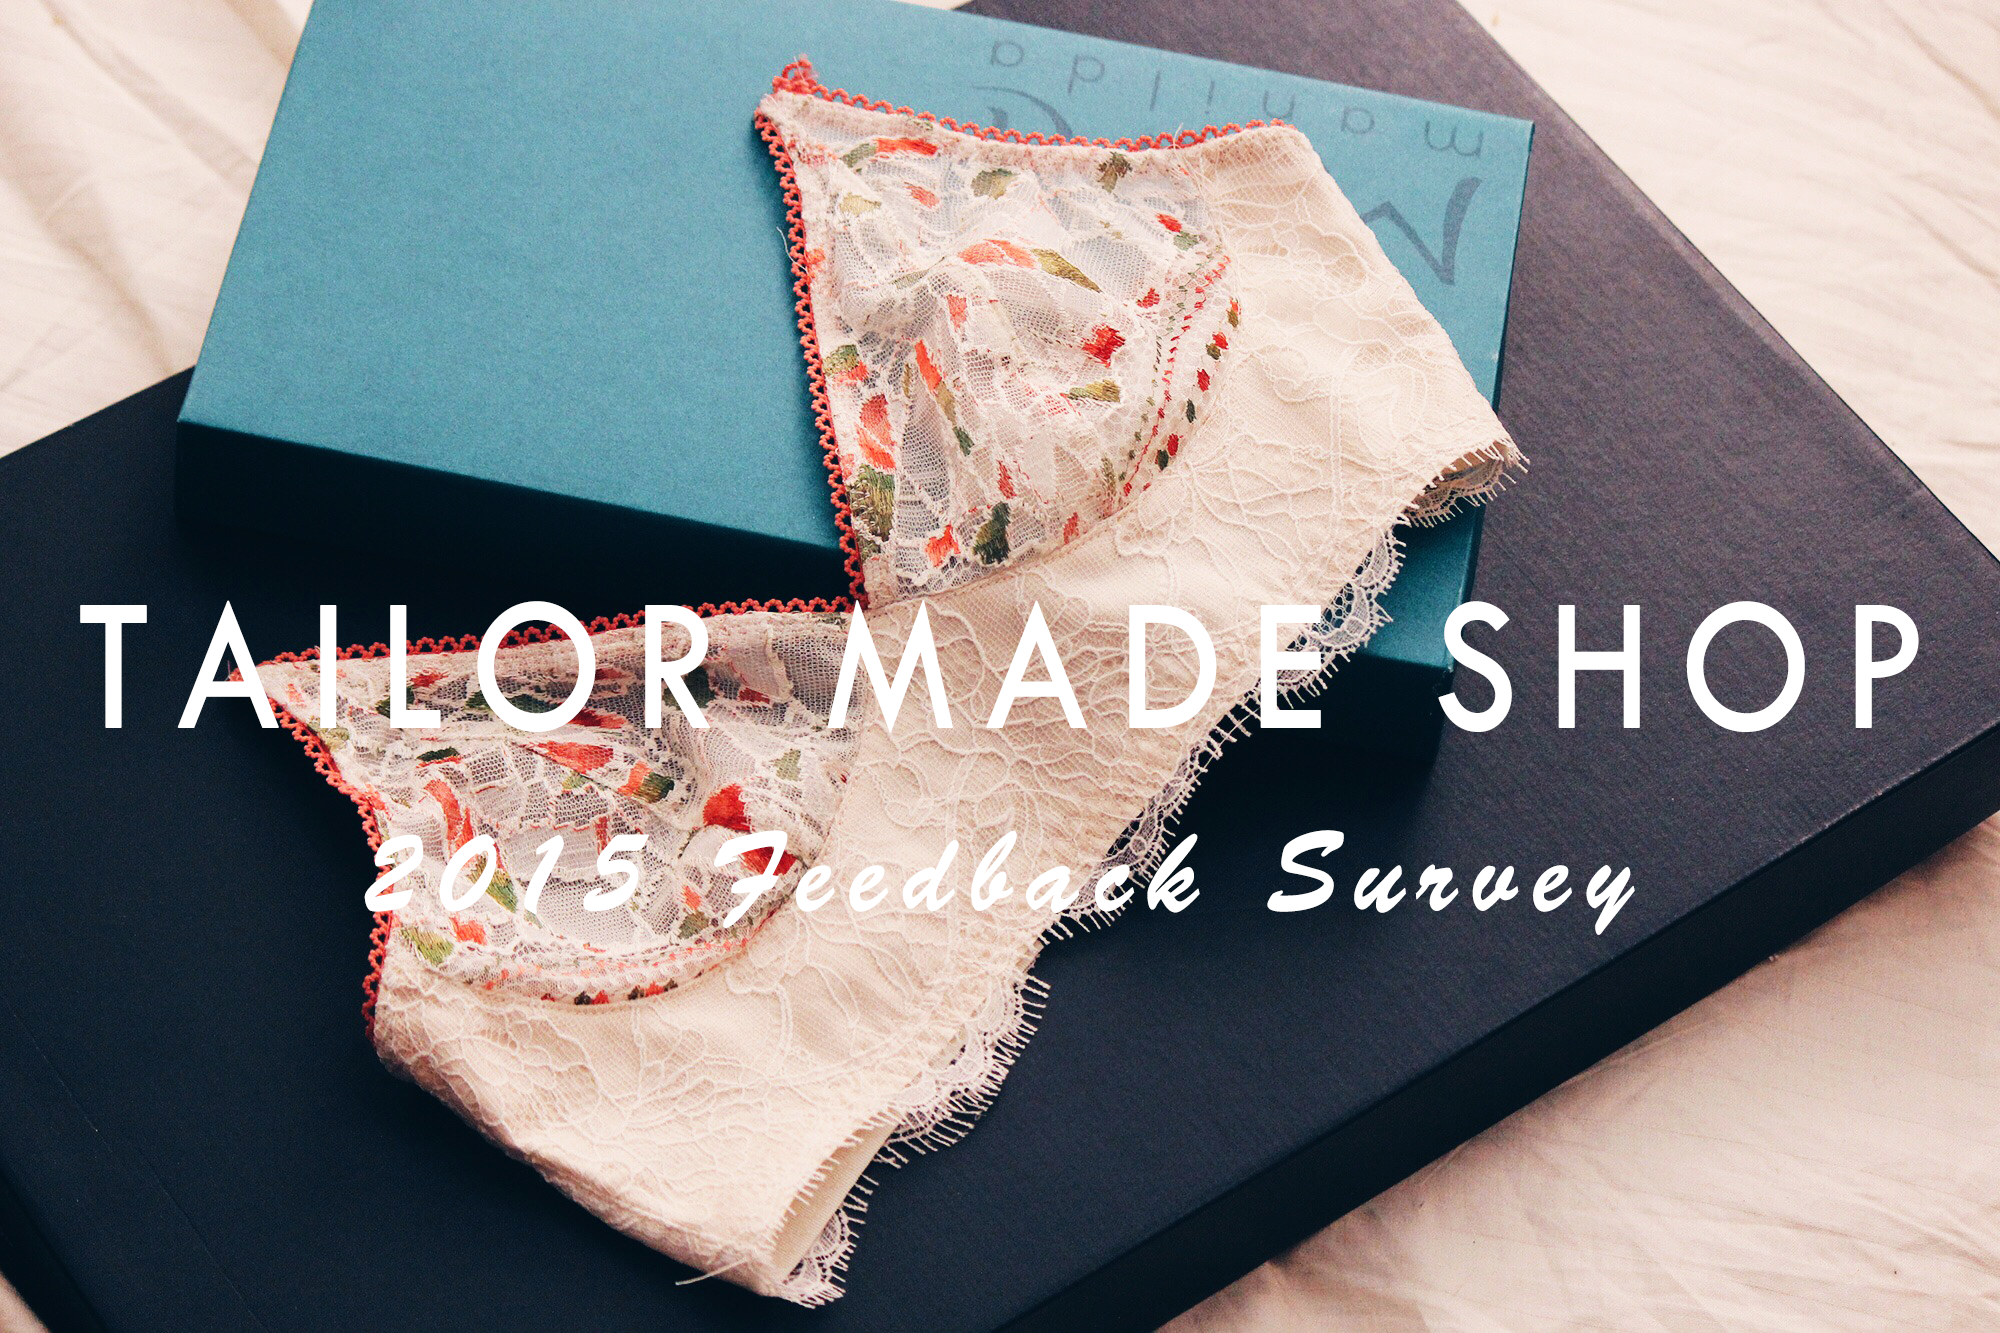 Tailor Made Shop Feedback Survey